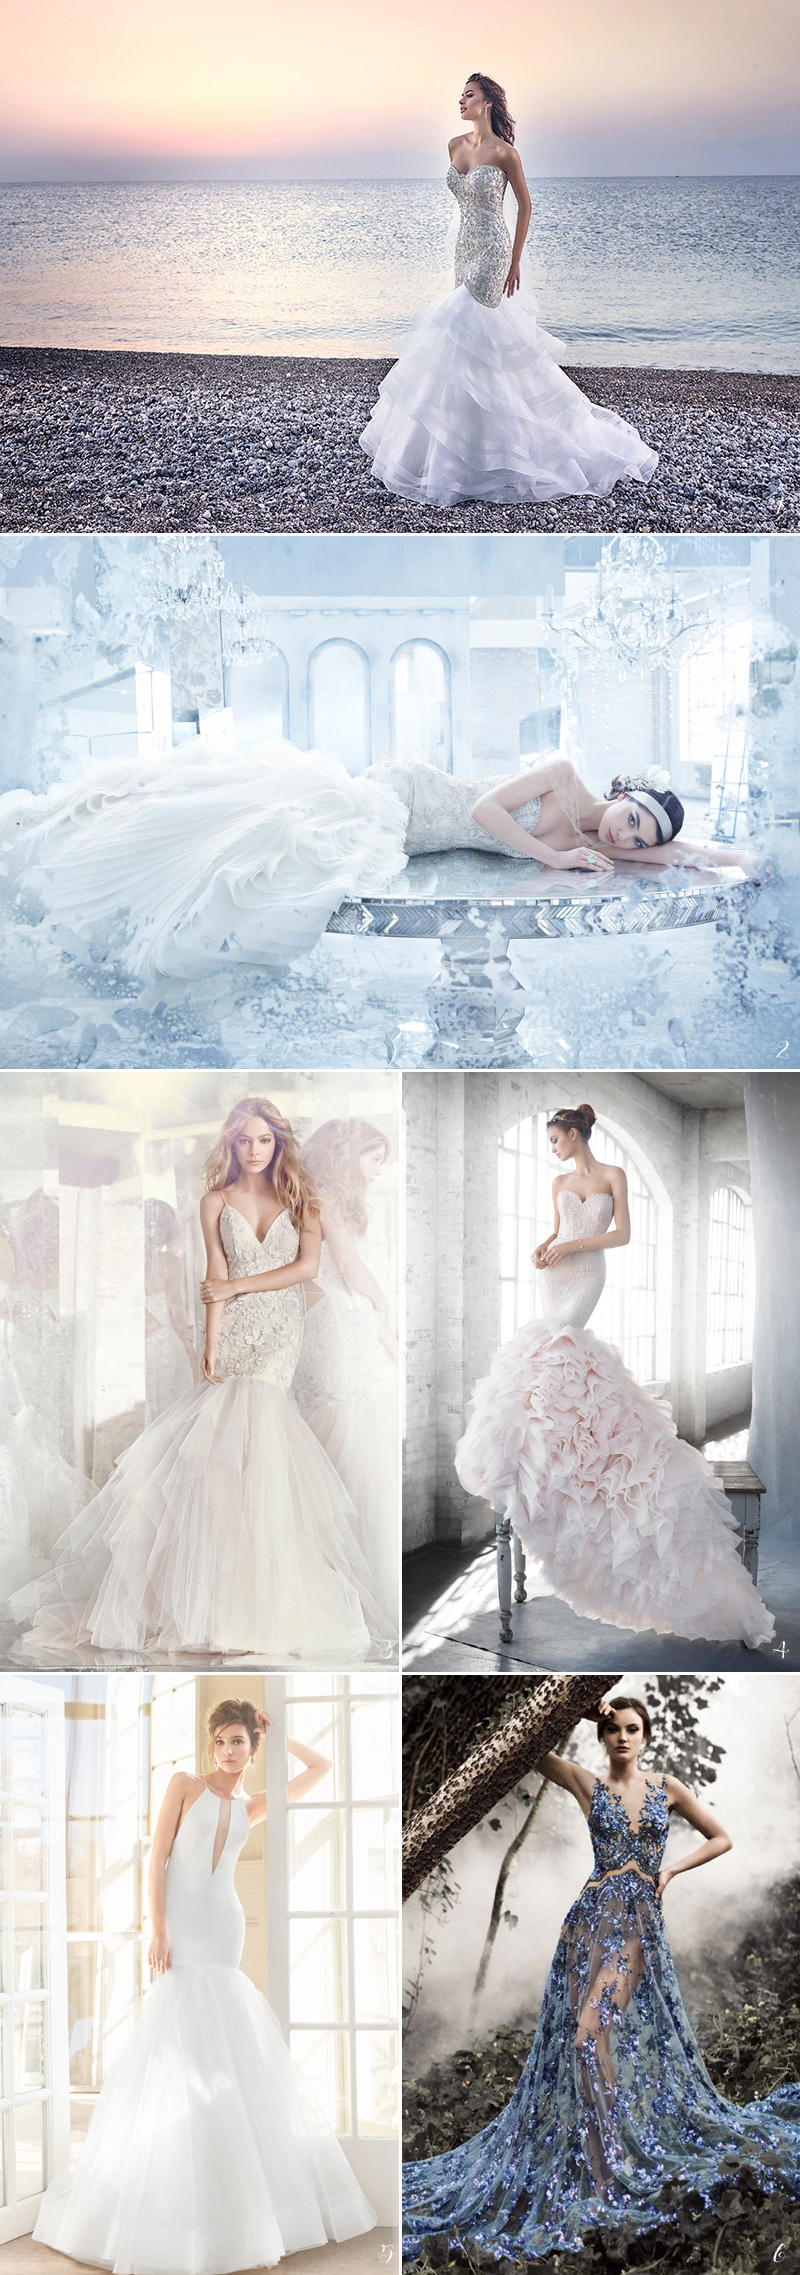 42 Fairy Tale Wedding Dresses For The Disney Princess Bride